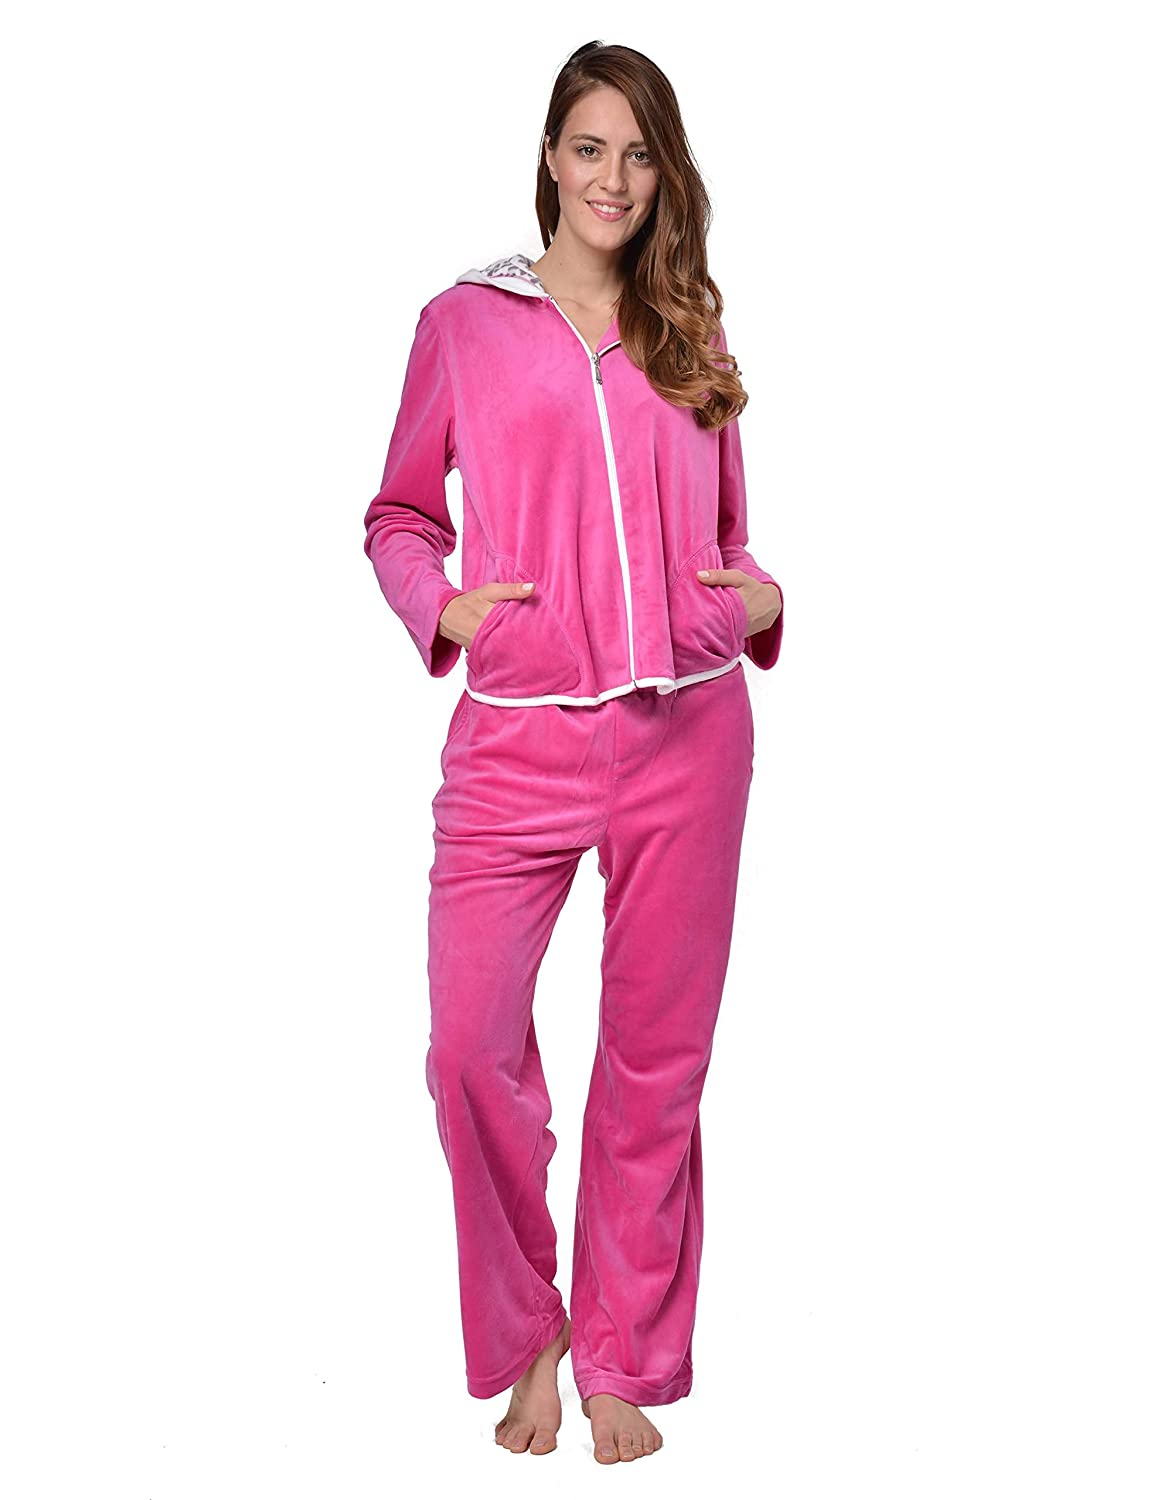 RAIKOU Nicki Women s Velour Leisure Suit Tracksuit Jogging Suit with Zip  and Hood with Leopard Print (Berry 46a0b00a93